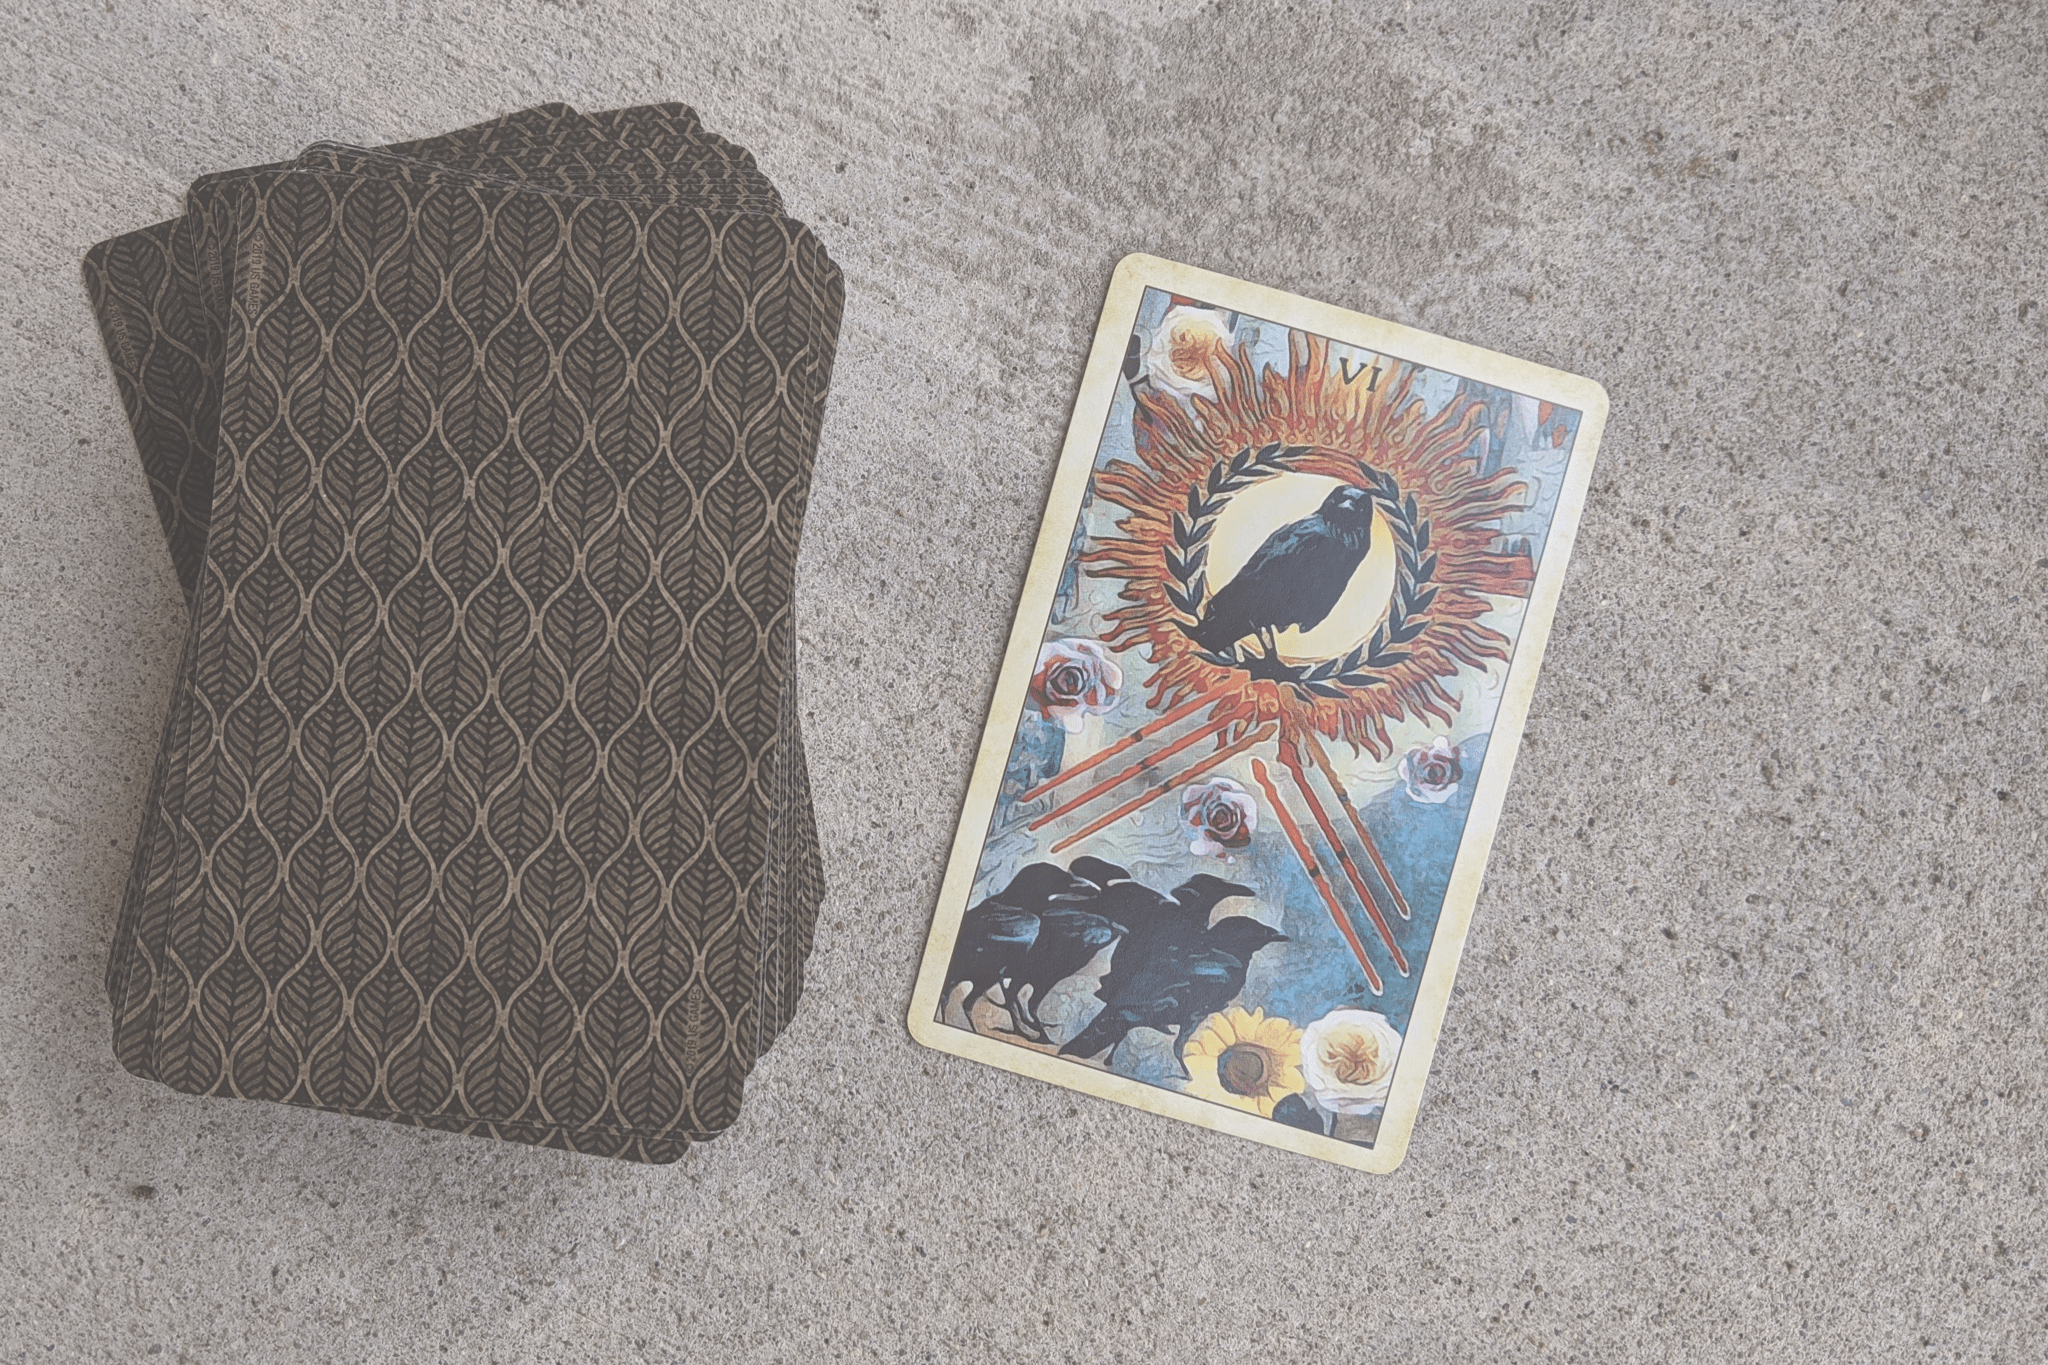 A deck of cards lays on the concrete with one card drawn and laying off to the side, a Six of Wands from the Crow Tarot deck.